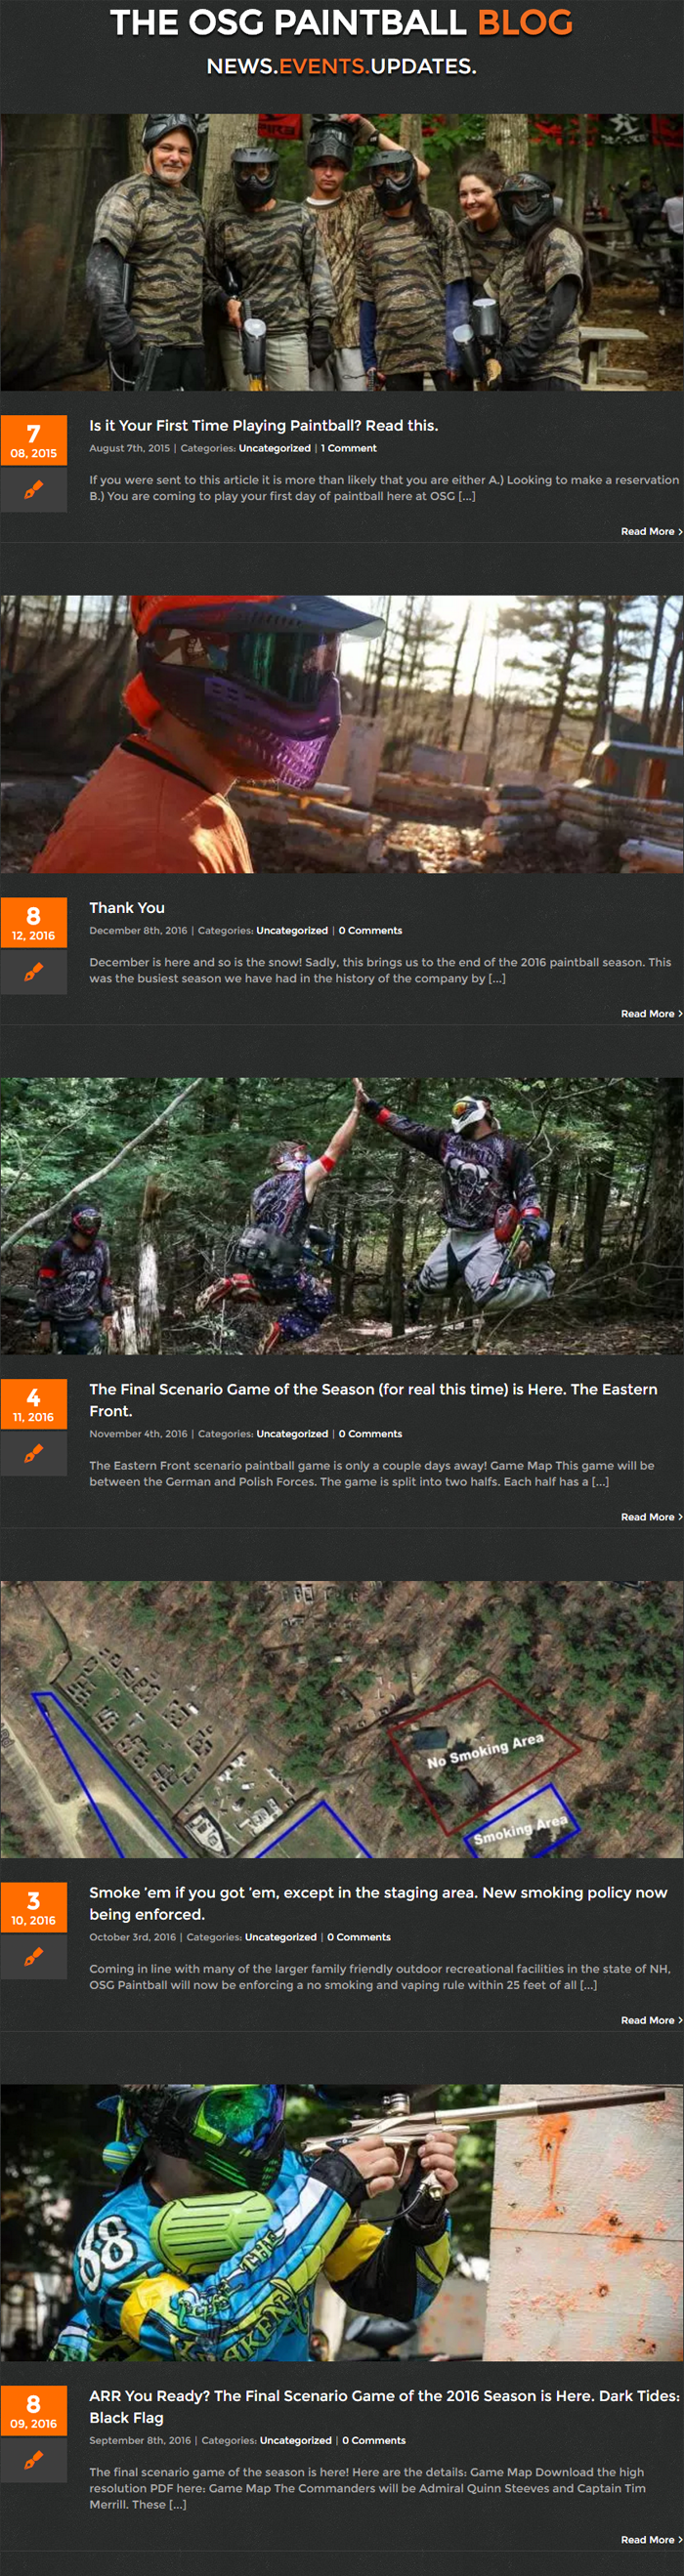 osg paintball blog